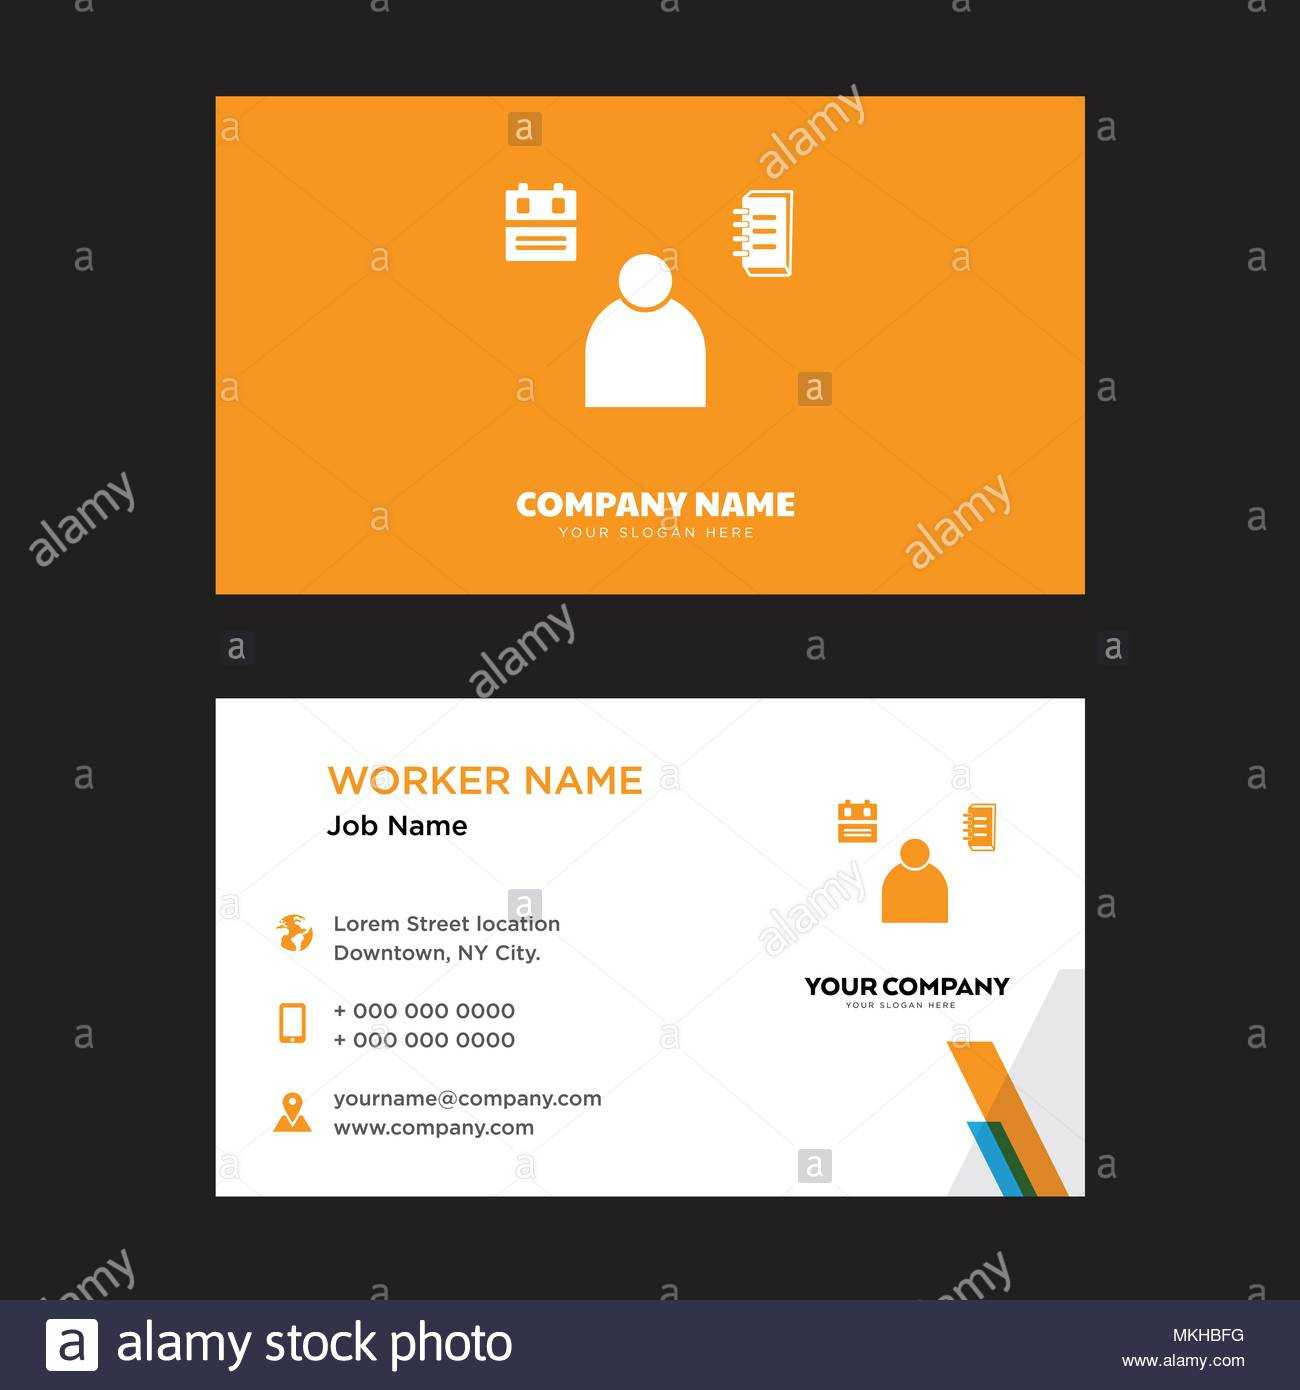 Student Business Card Design Template, Visiting For Your Throughout Student Business Card Template